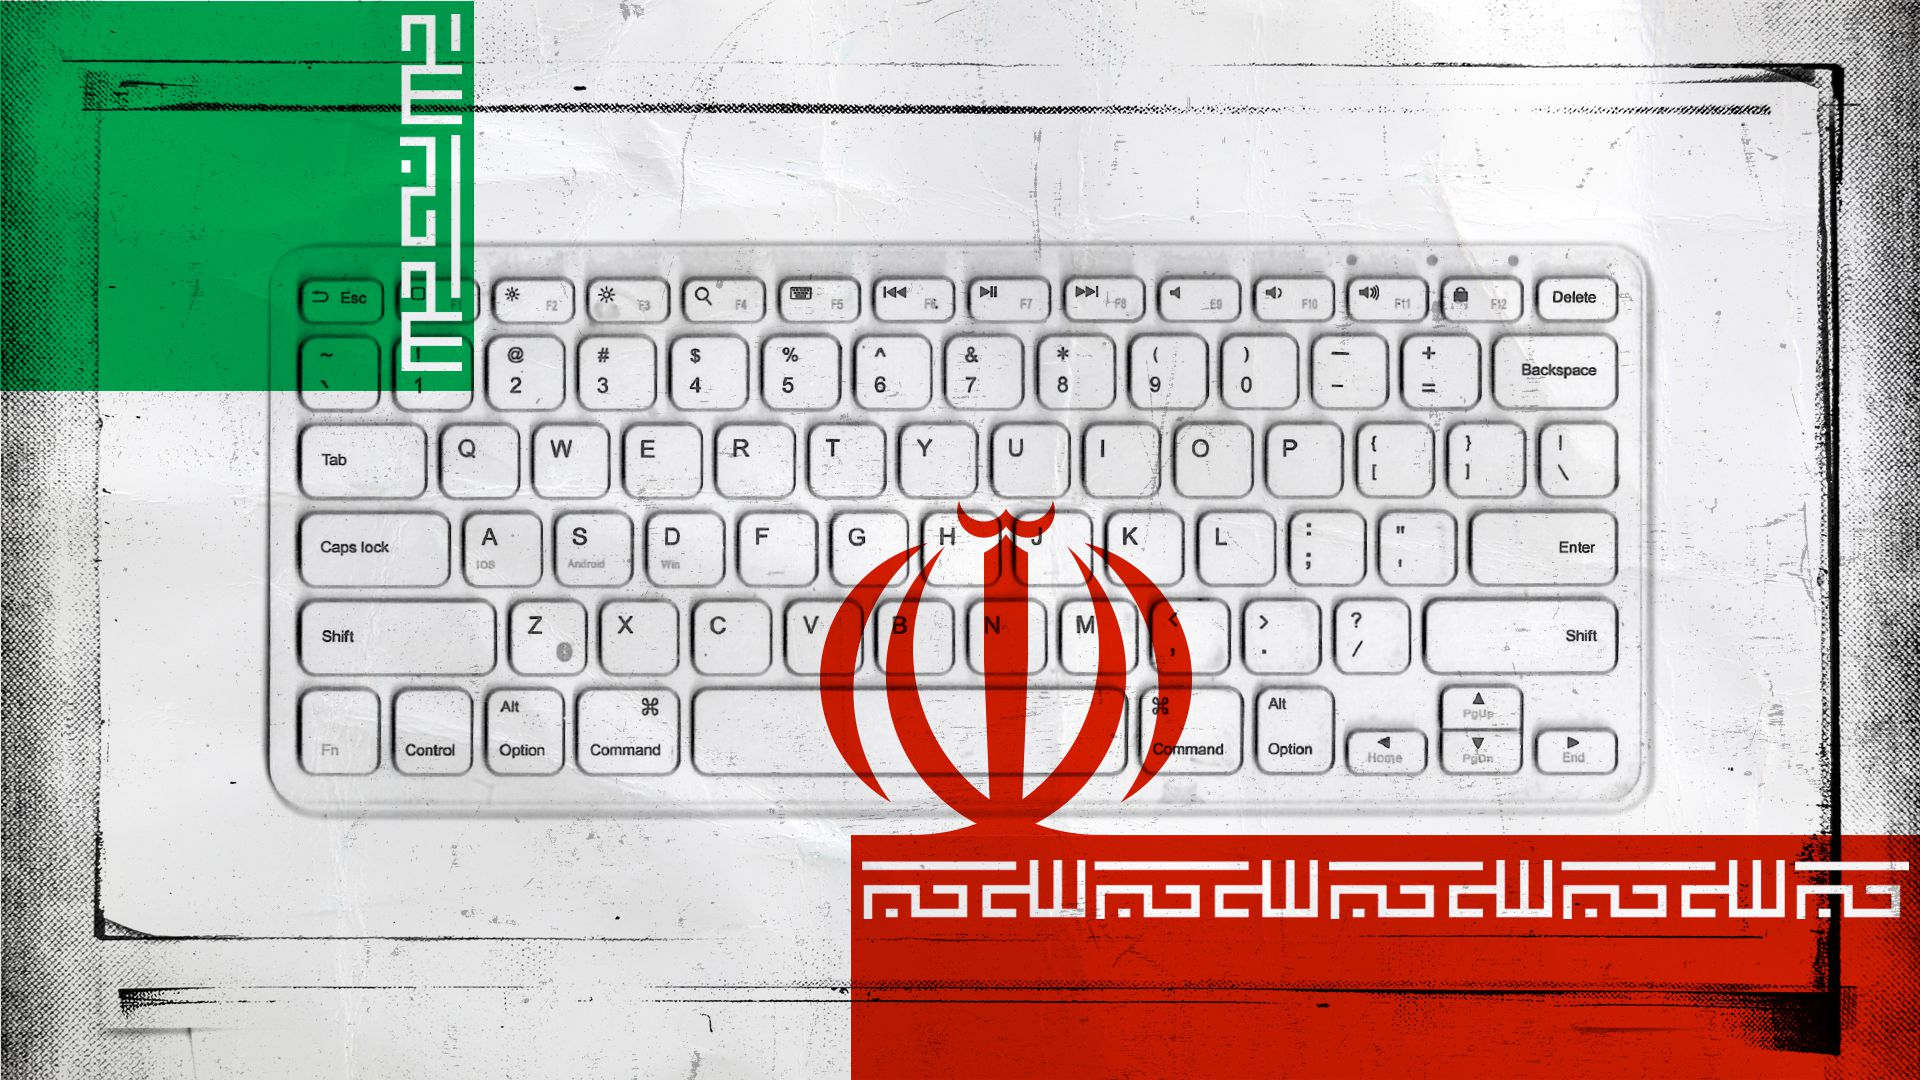 Iran's history of hacking and being hacked